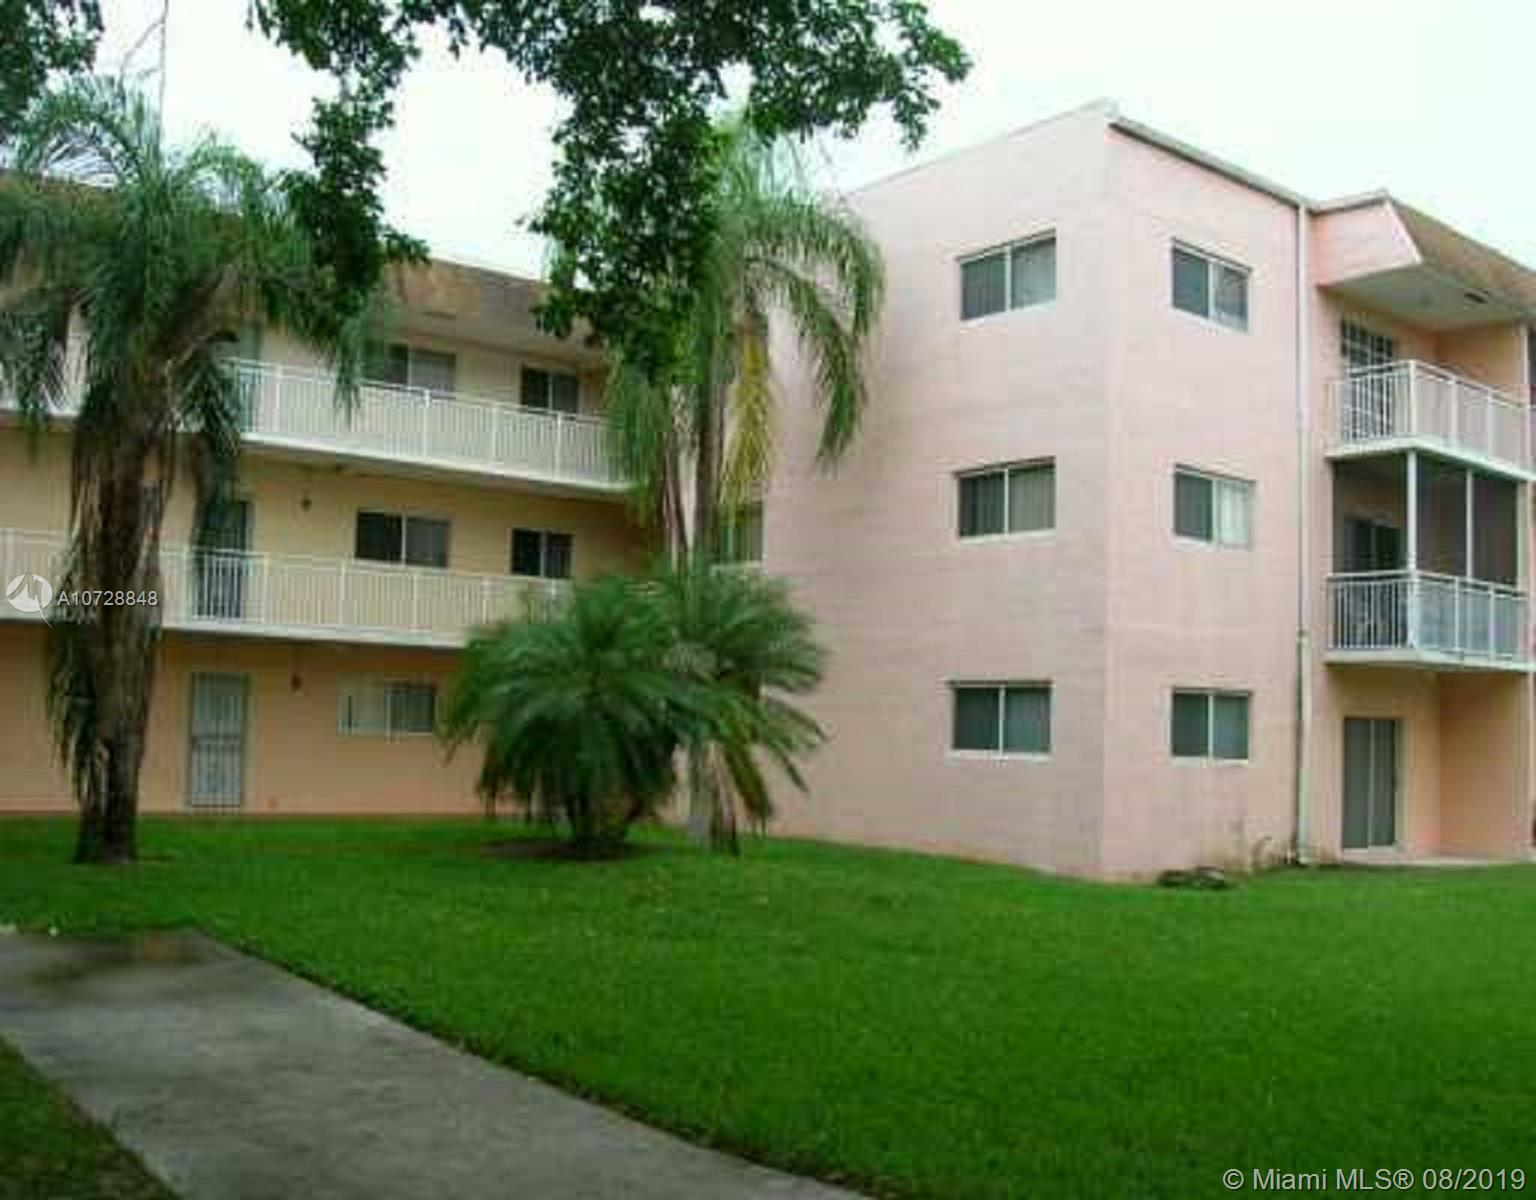 11301 SW 200 ST, Kendall in Miami-dade County County, FL 33157 Home for Sale